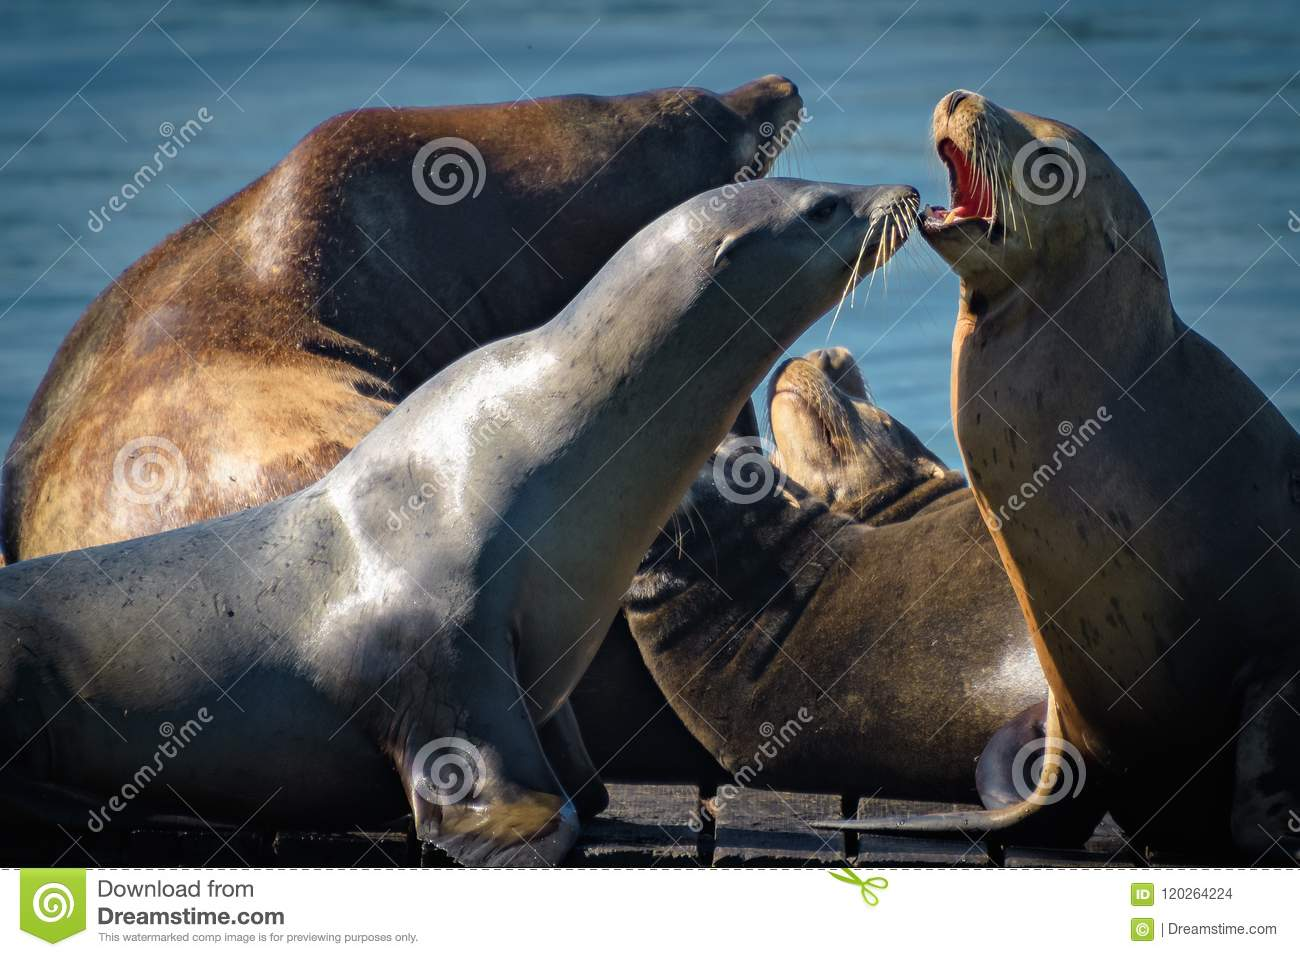 California Sea Lions out in the sun